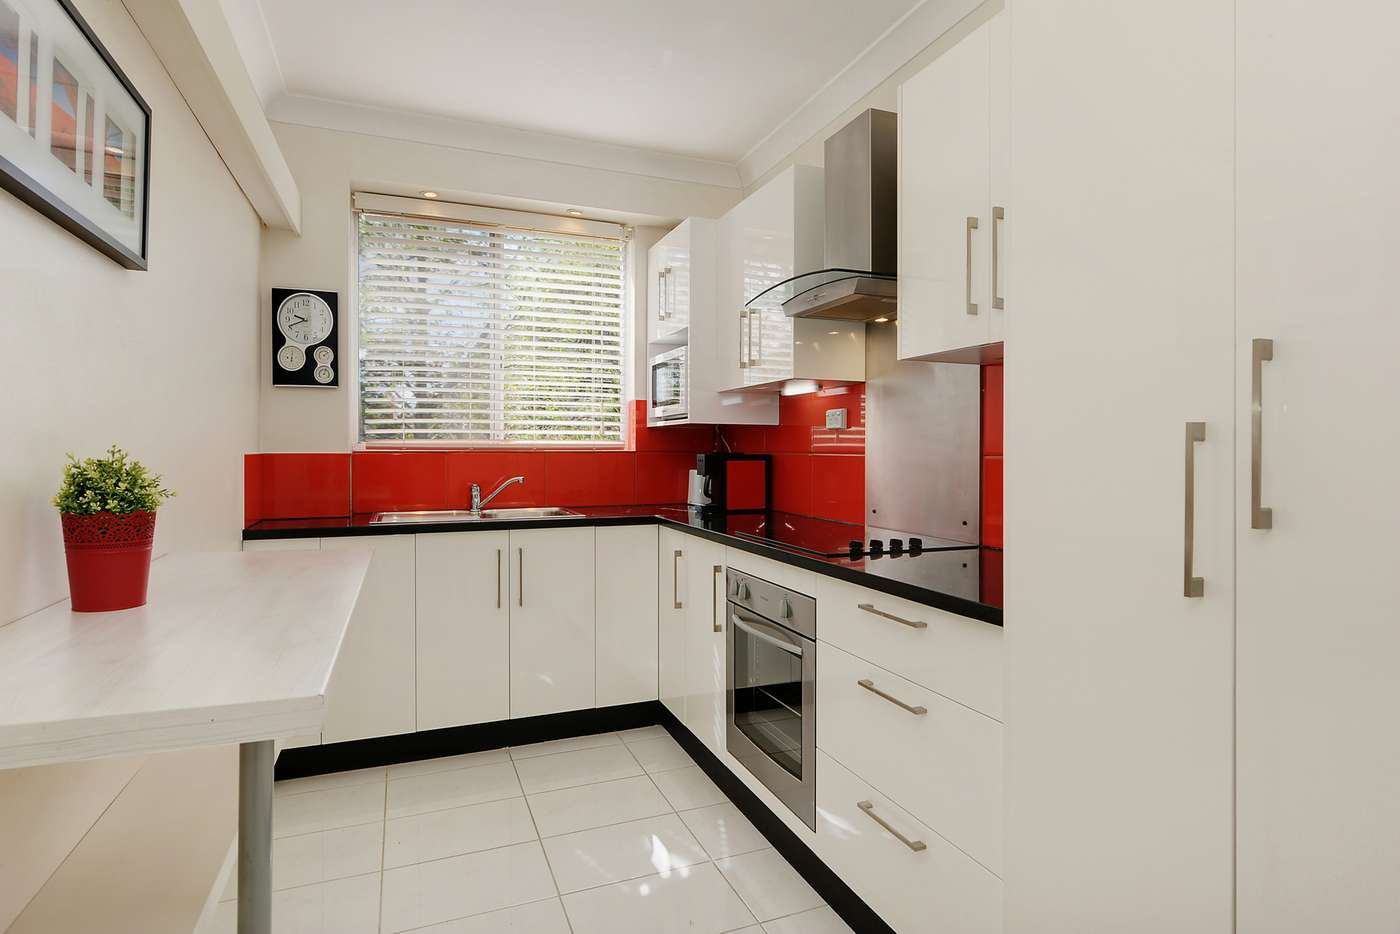 Main view of Homely apartment listing, 20/81-83 Florence Street, Hornsby NSW 2077